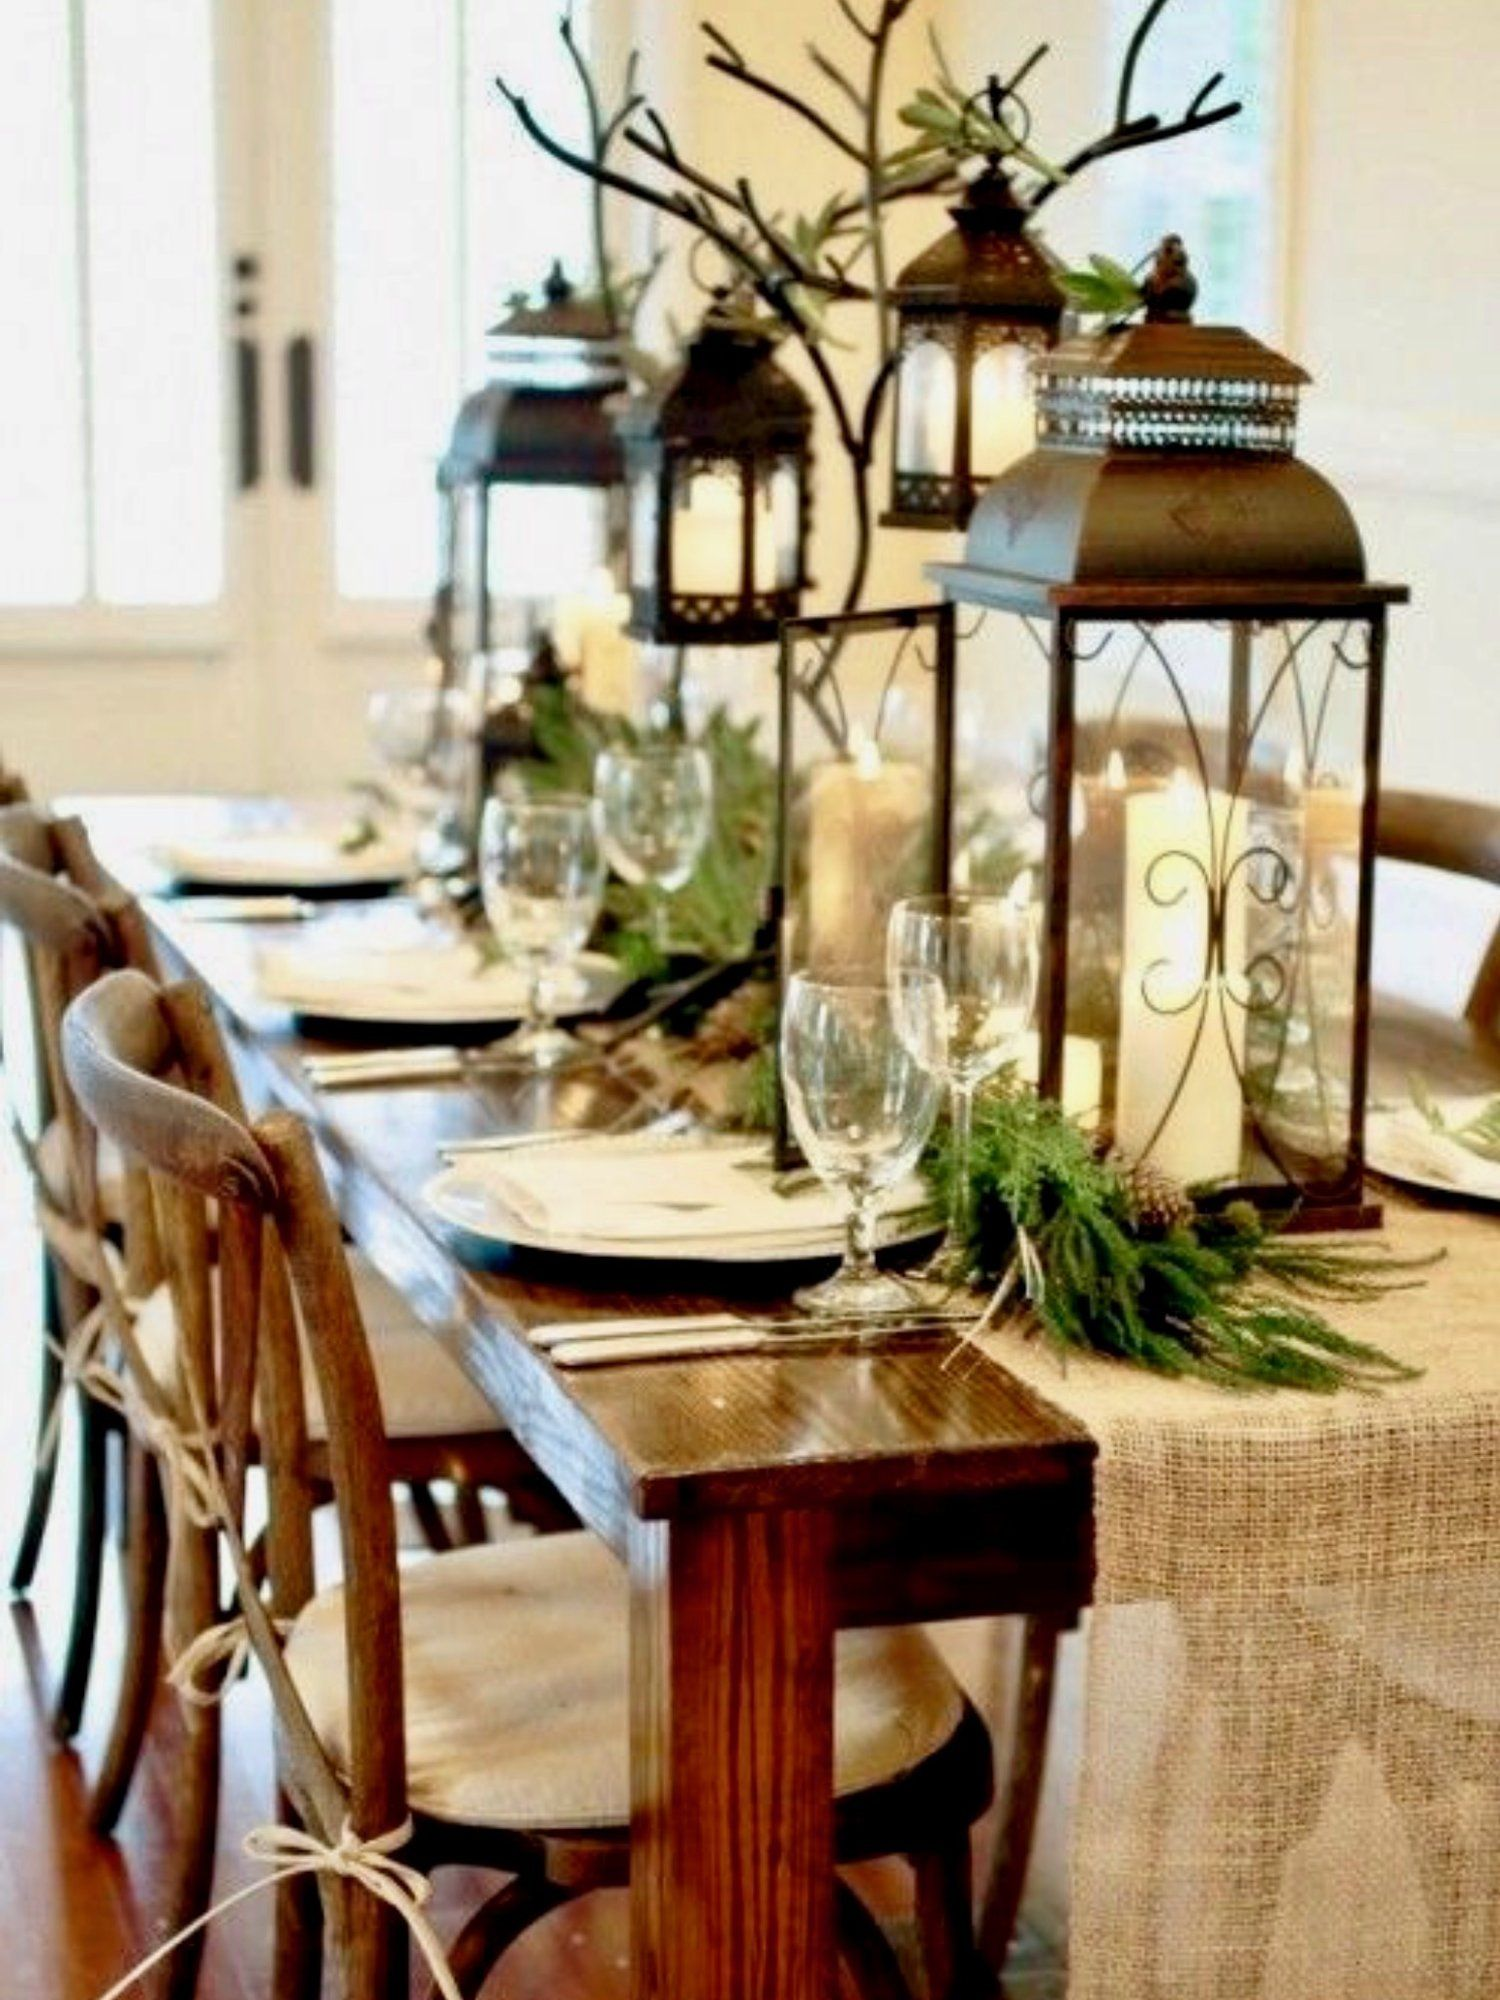 Top 250 Christmas Table Decorating Ideas on Pinterest @styleestate & Top 150 Christmas Tables (1/5)? | Pinterest | Holidays Christmas ...